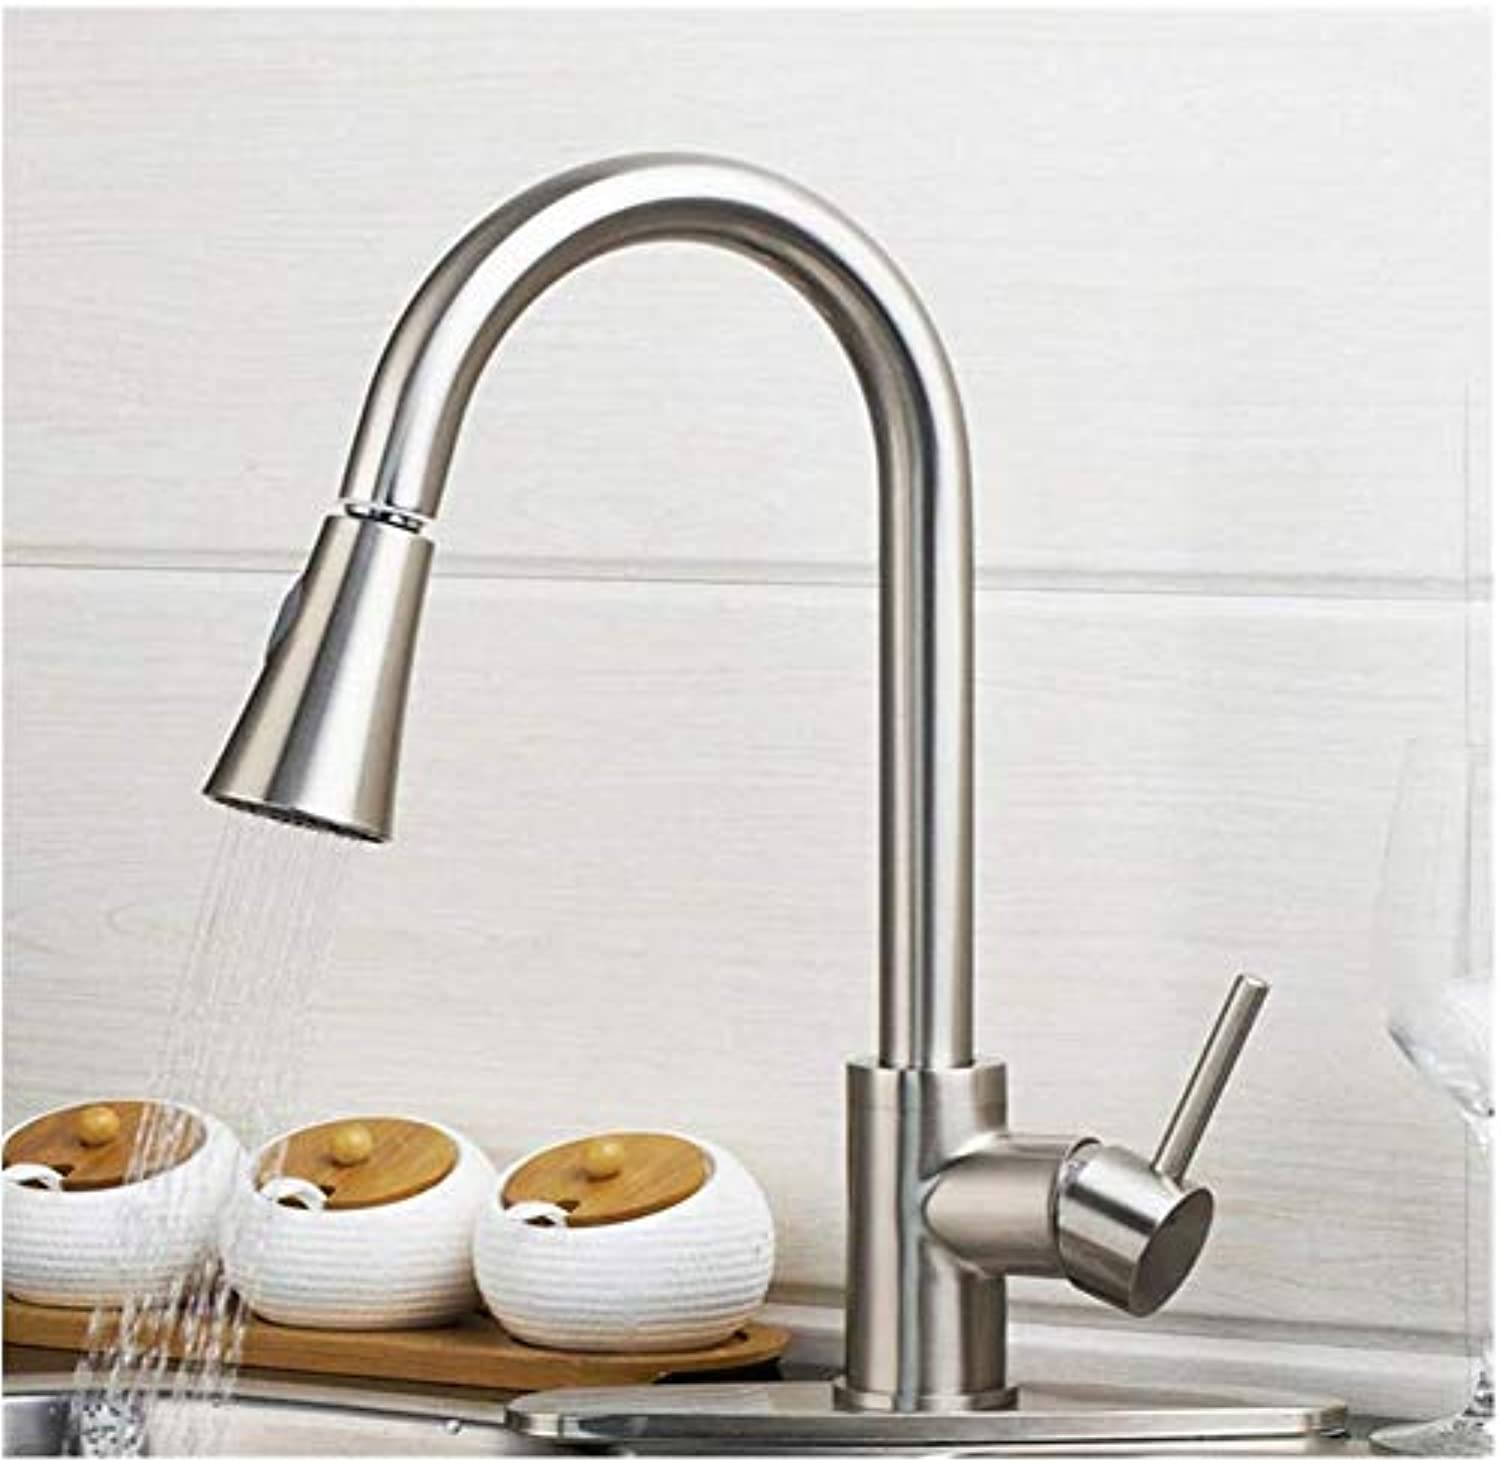 Brass Wall Faucet Chrome Brass Faucetbrushed Nickel Single Hand Kitchen Tap Mixer Brass & Cover Plate